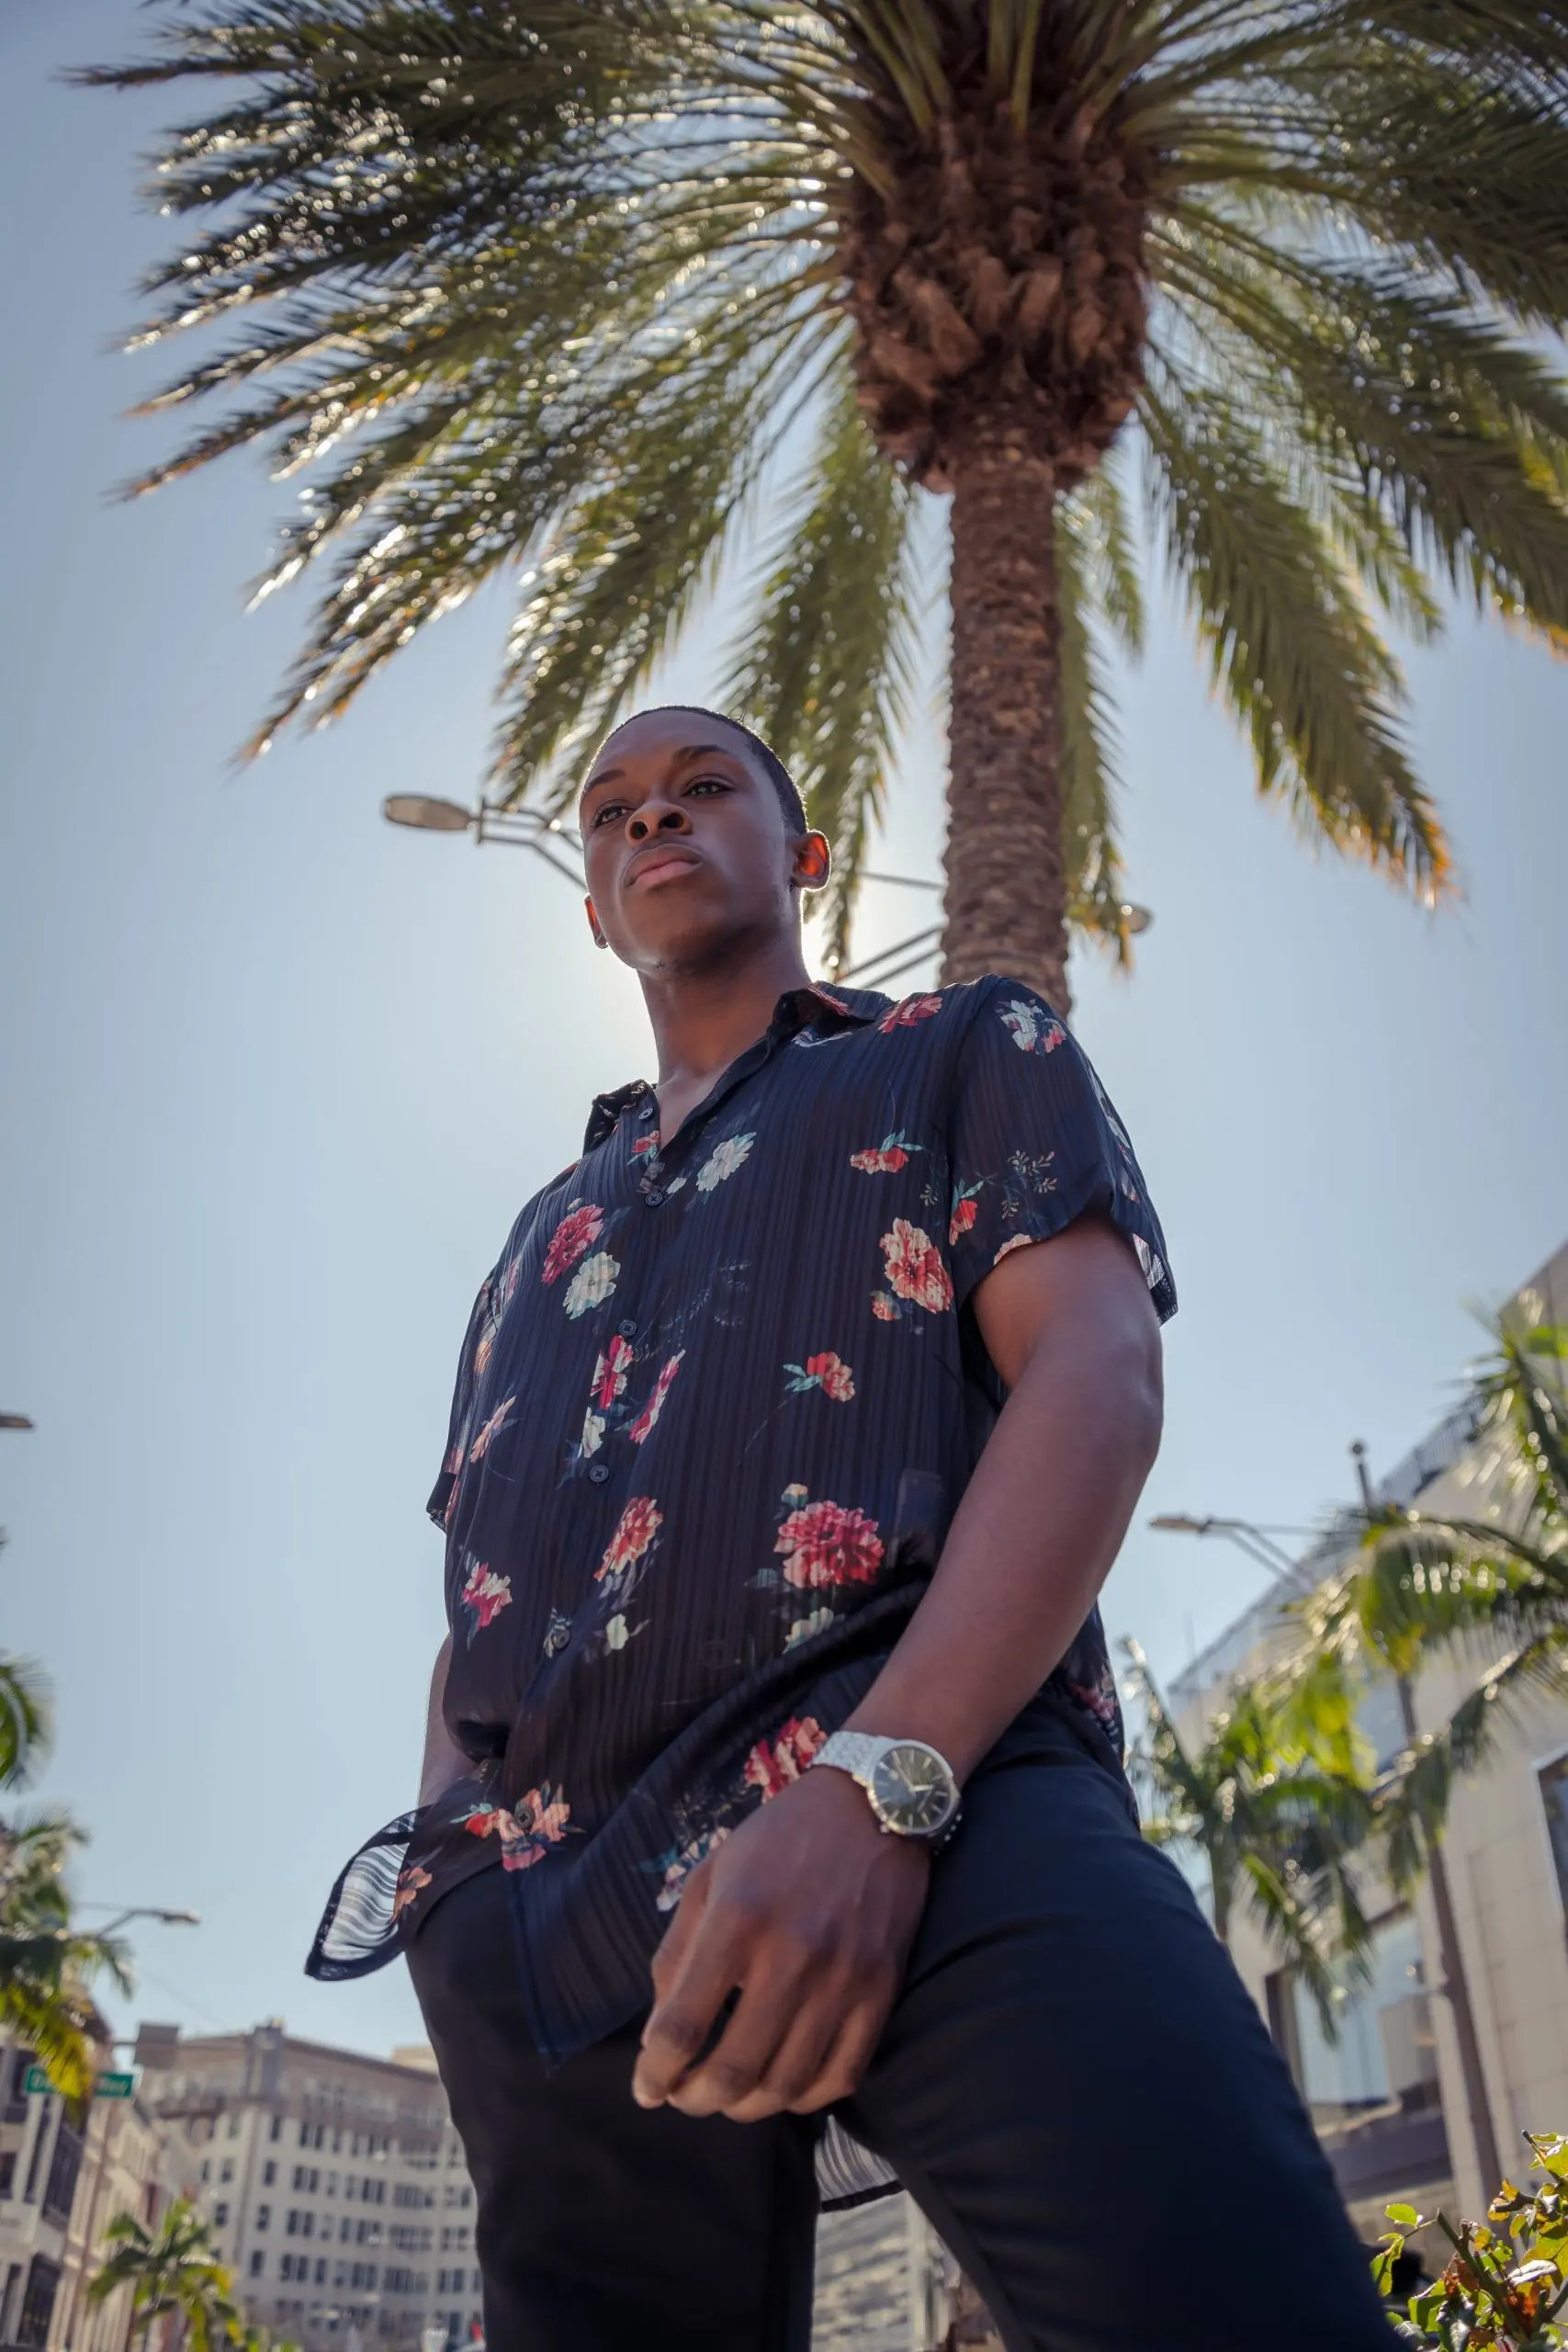 Black male model posing in front of California palm tree's and a light post sporting a black and floral button-down shirt and a nice watch.